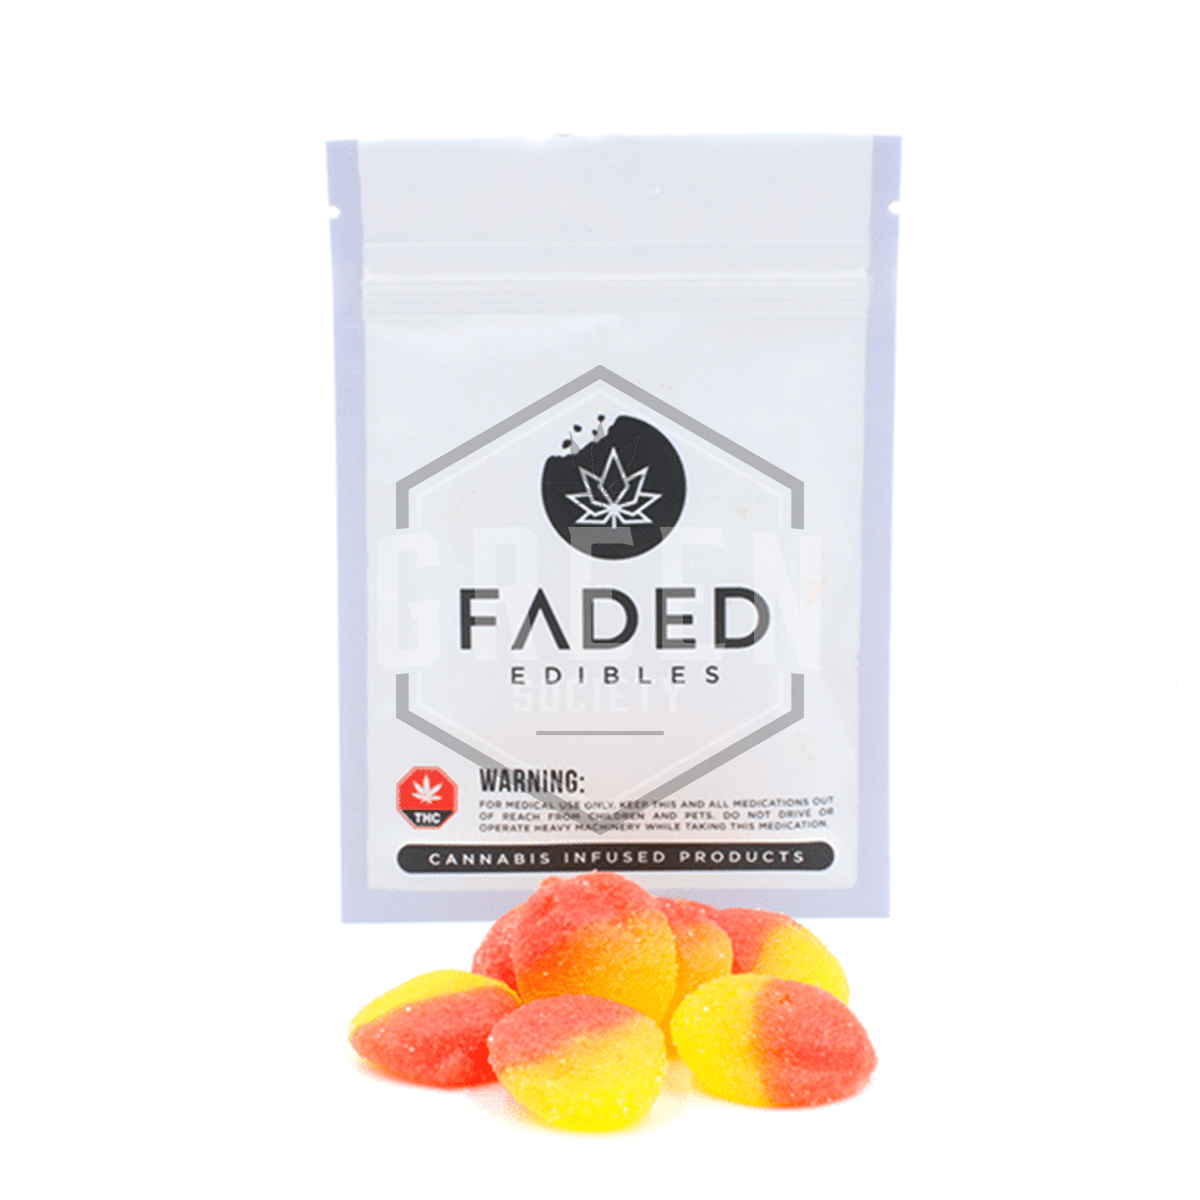 Peach Drops by Faded Cannabis Co. by Green Society - Image © 2018 Green Society. All Rights Reserved.